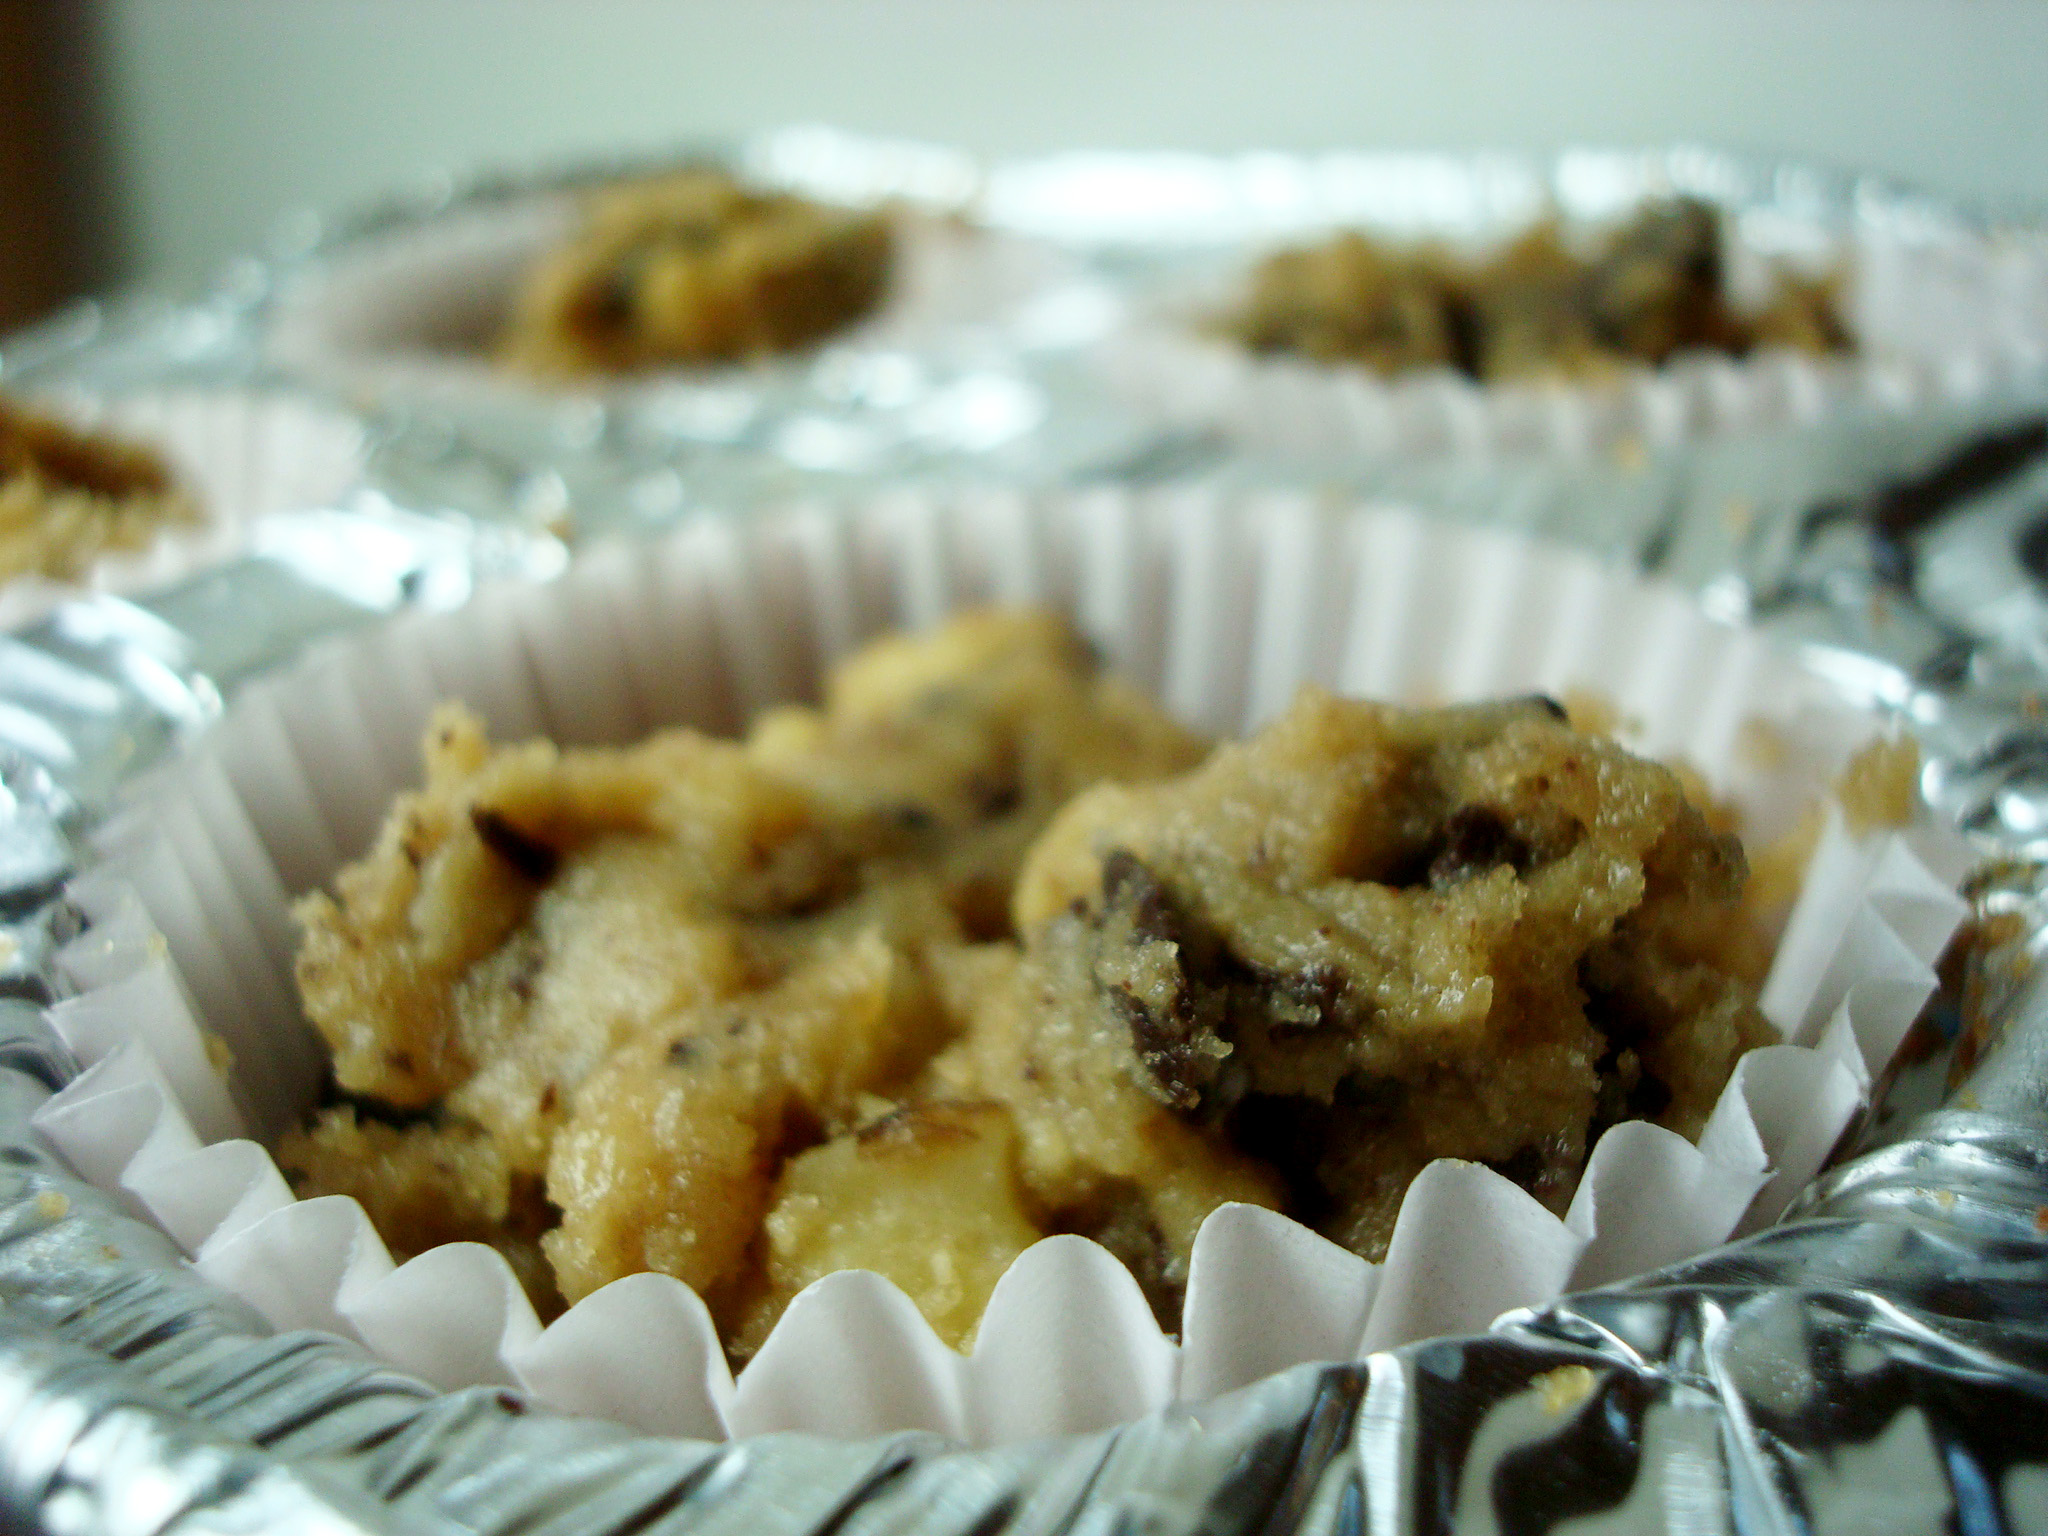 Our cups runneth over...with cookie dough